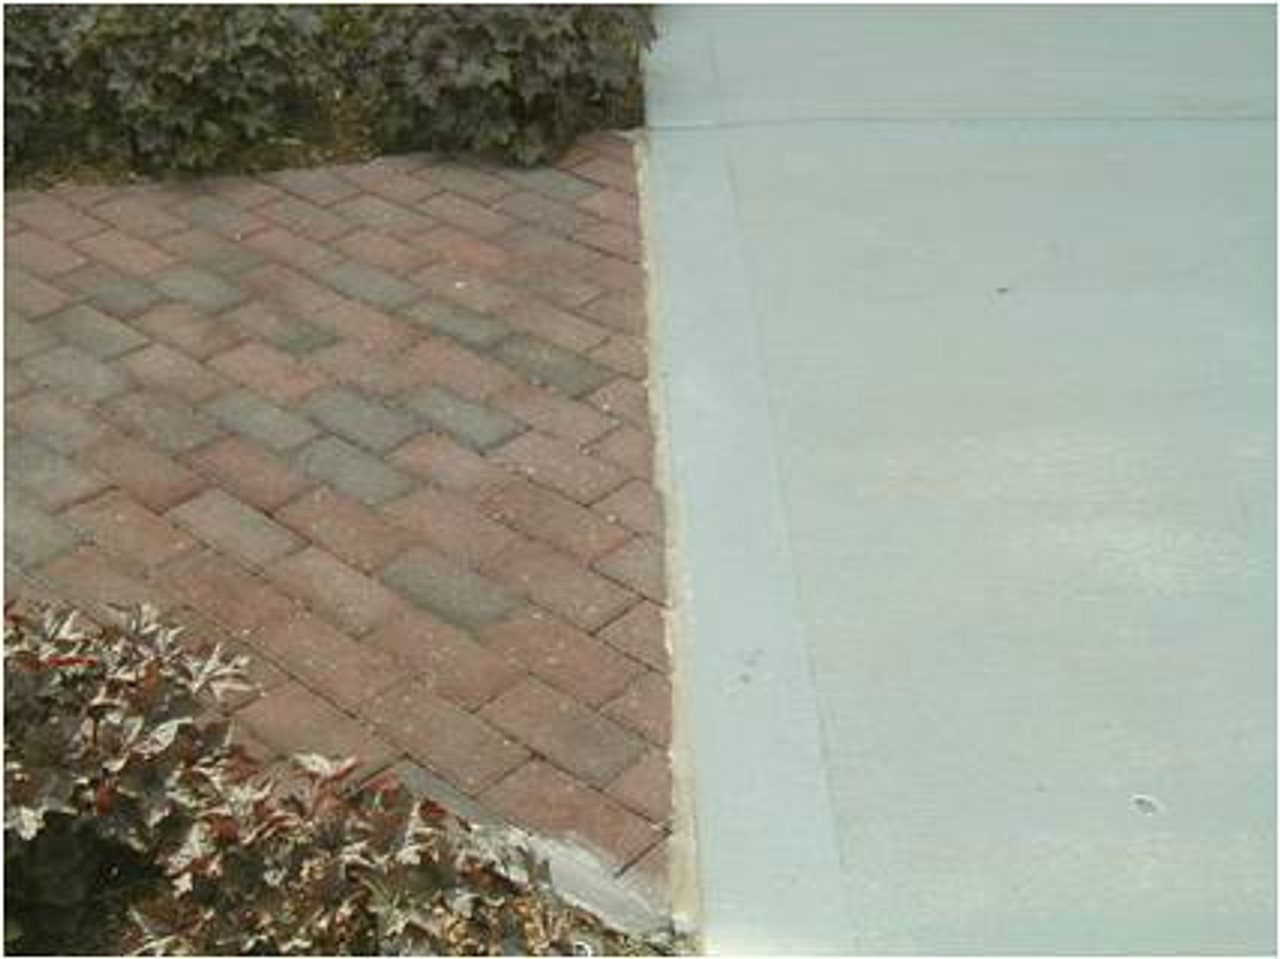 Clean and seal expansion joint between paver walkway and concrete driveway